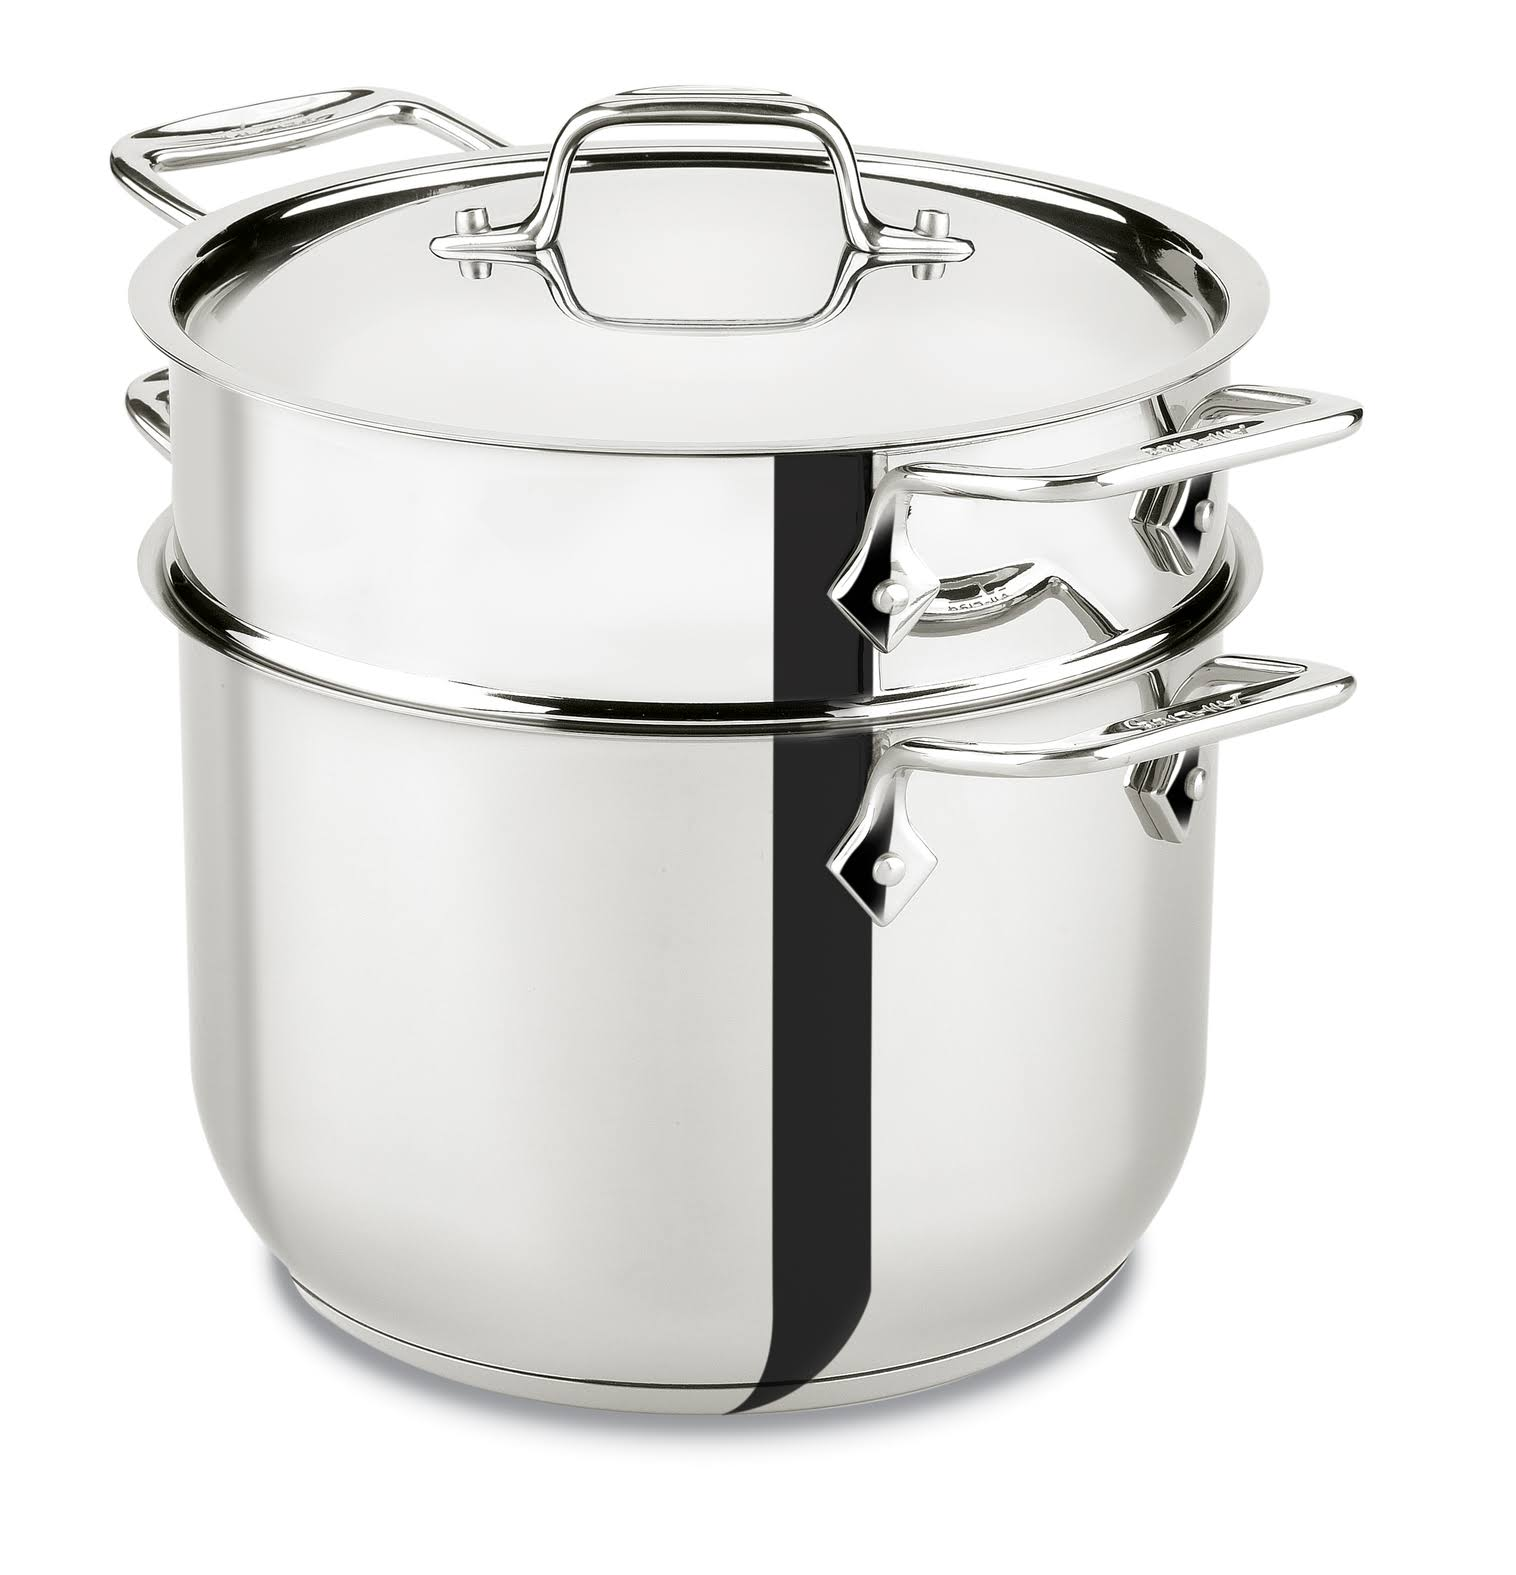 All-Clad Covered Pasta Pot - Stainless Steel